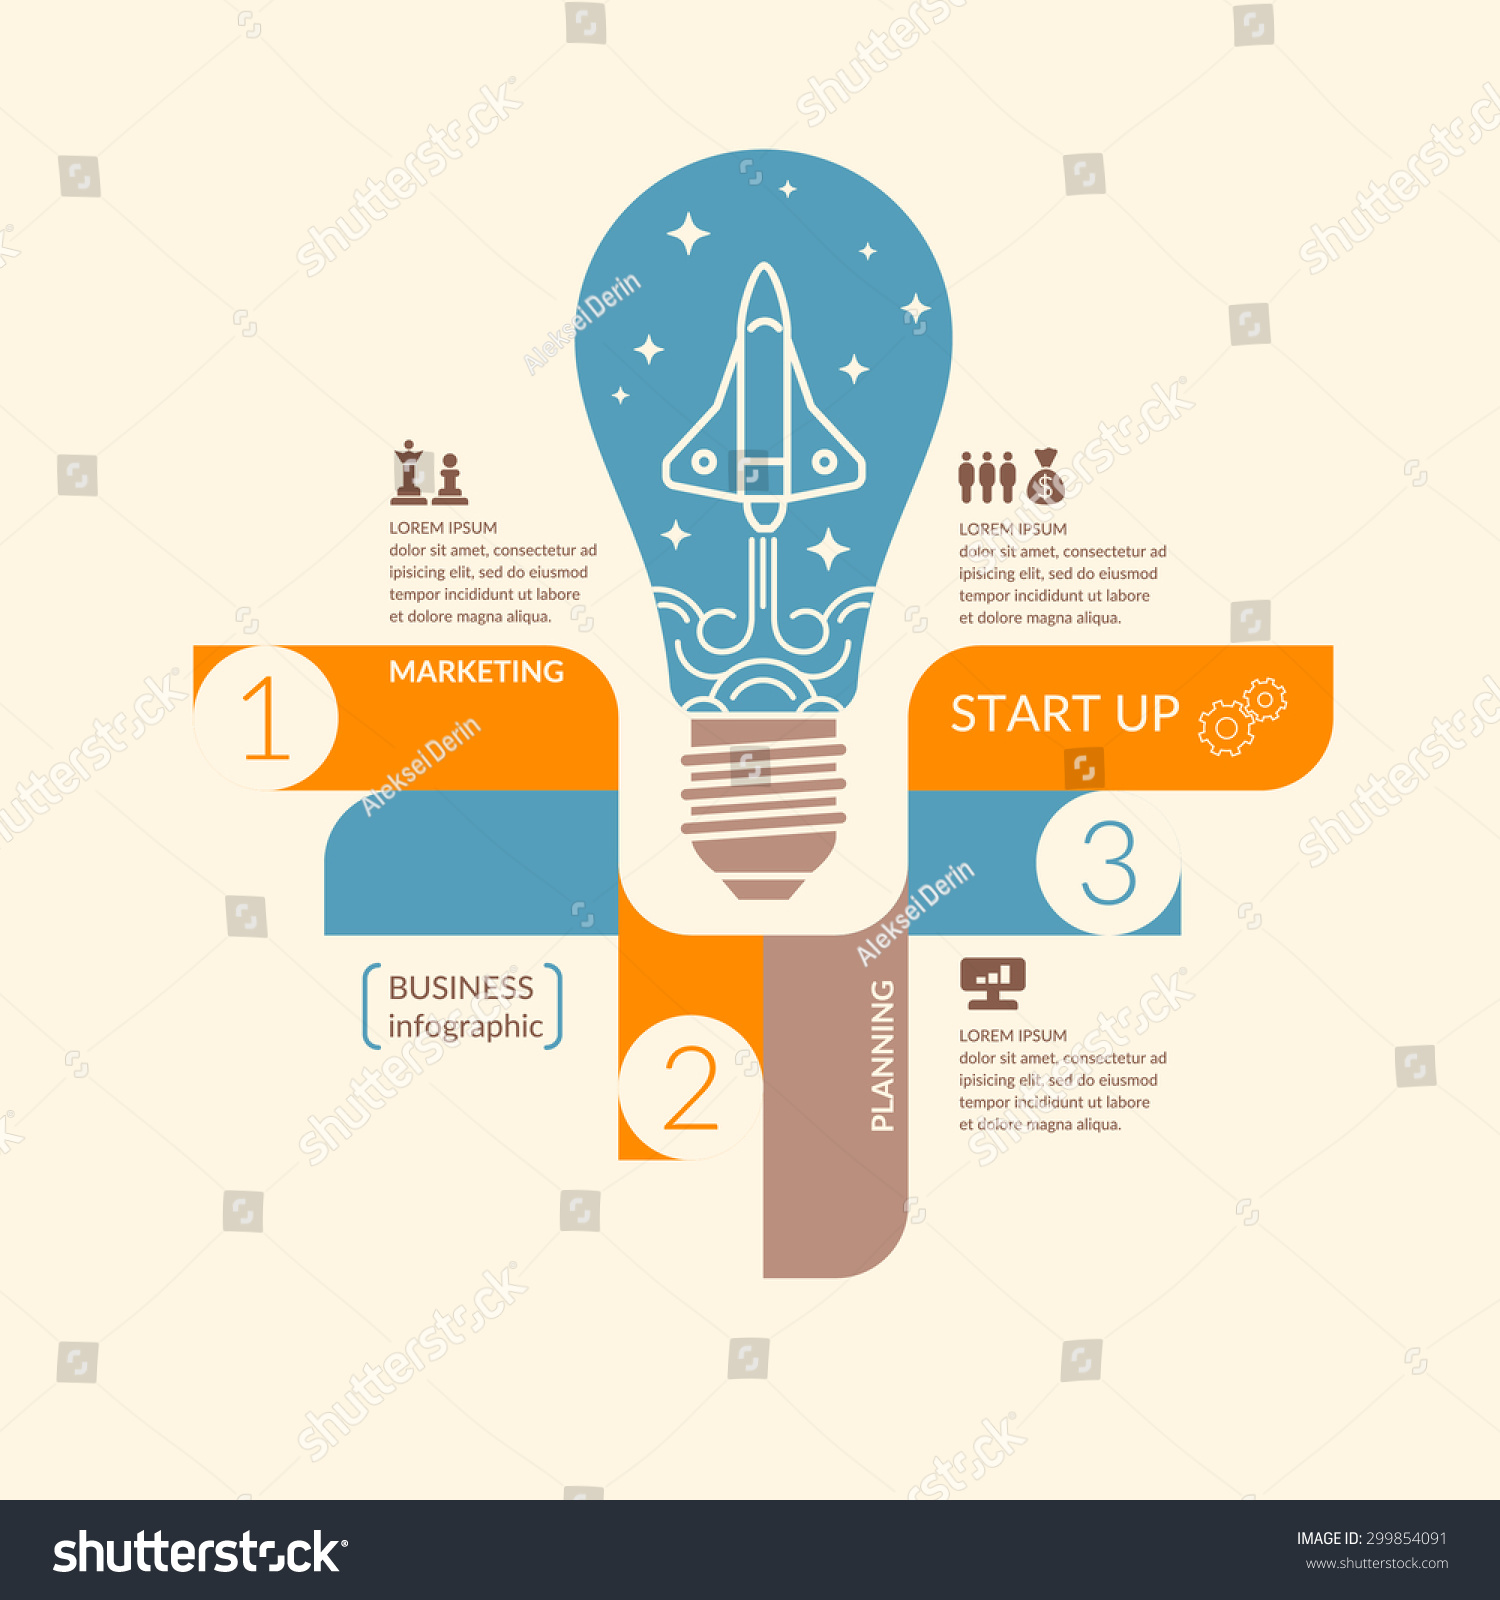 Start Up Business Infographics Icons Illustrations Stock Vector ...